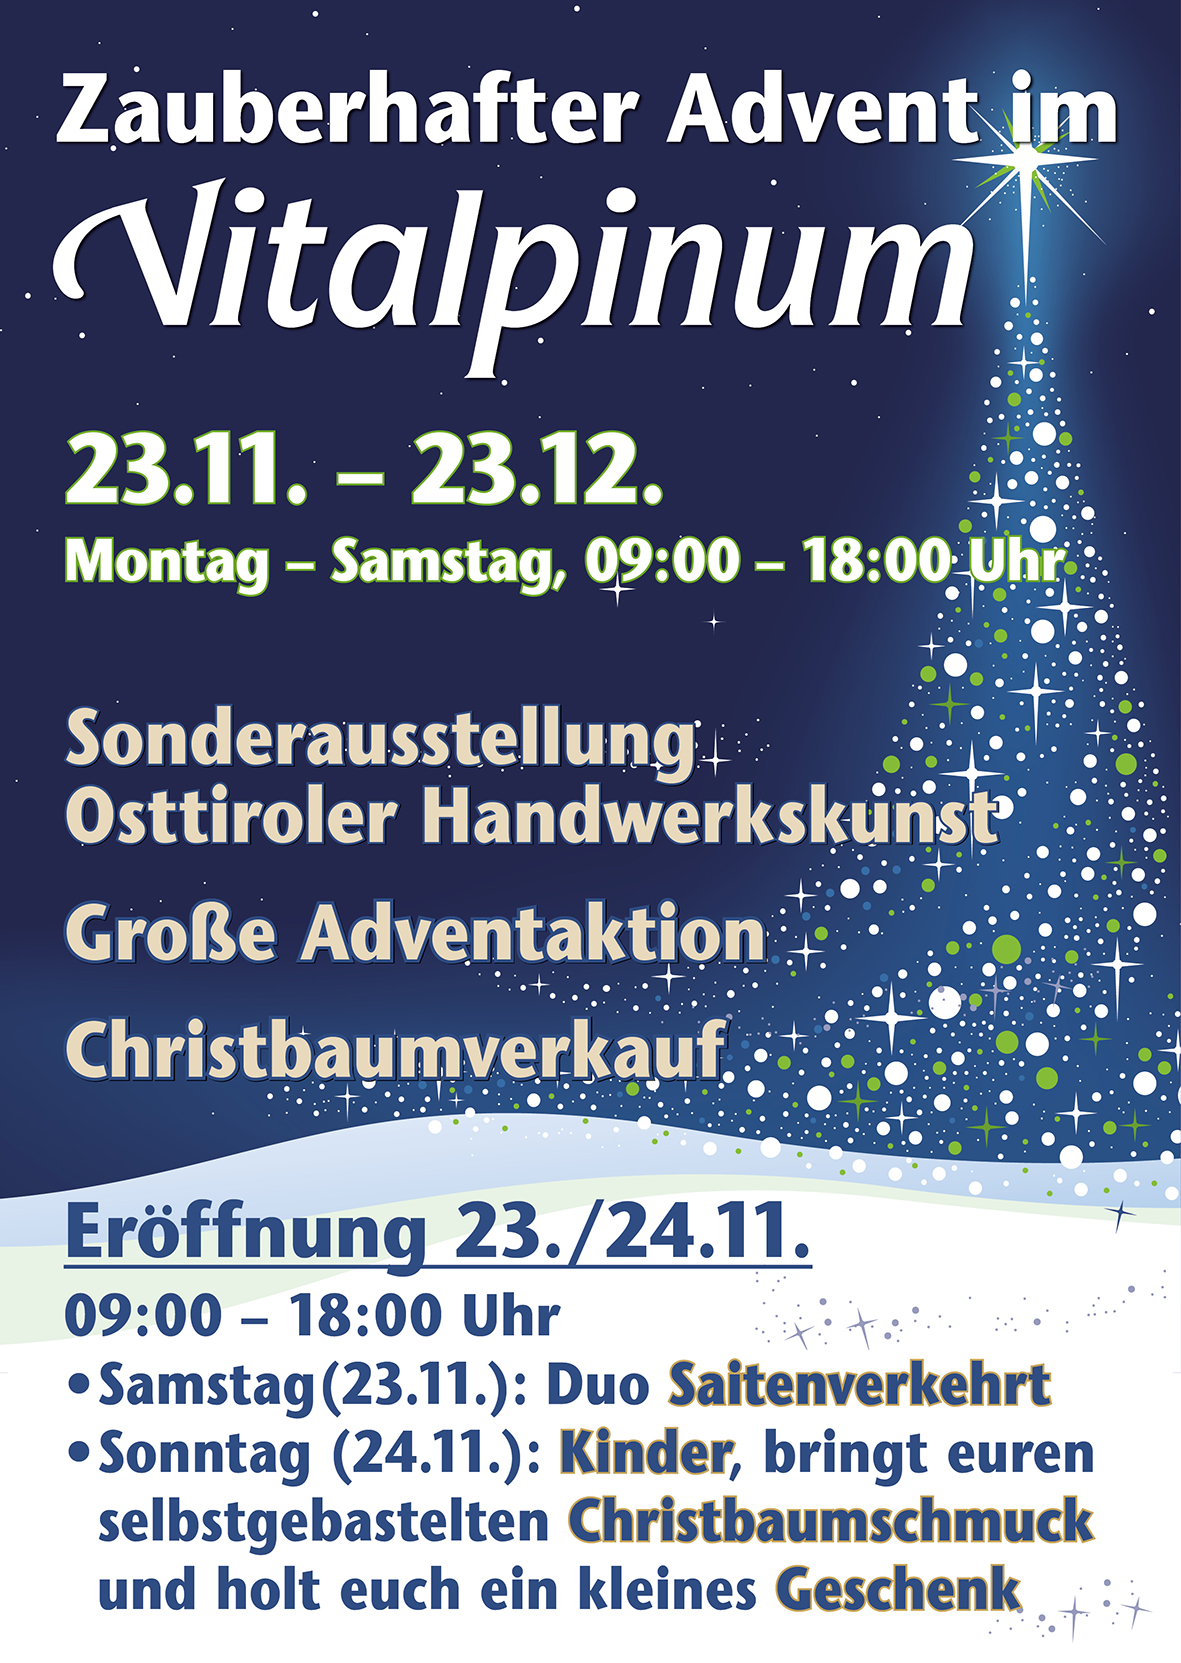 Vitalpinum Advent2019 Plakat